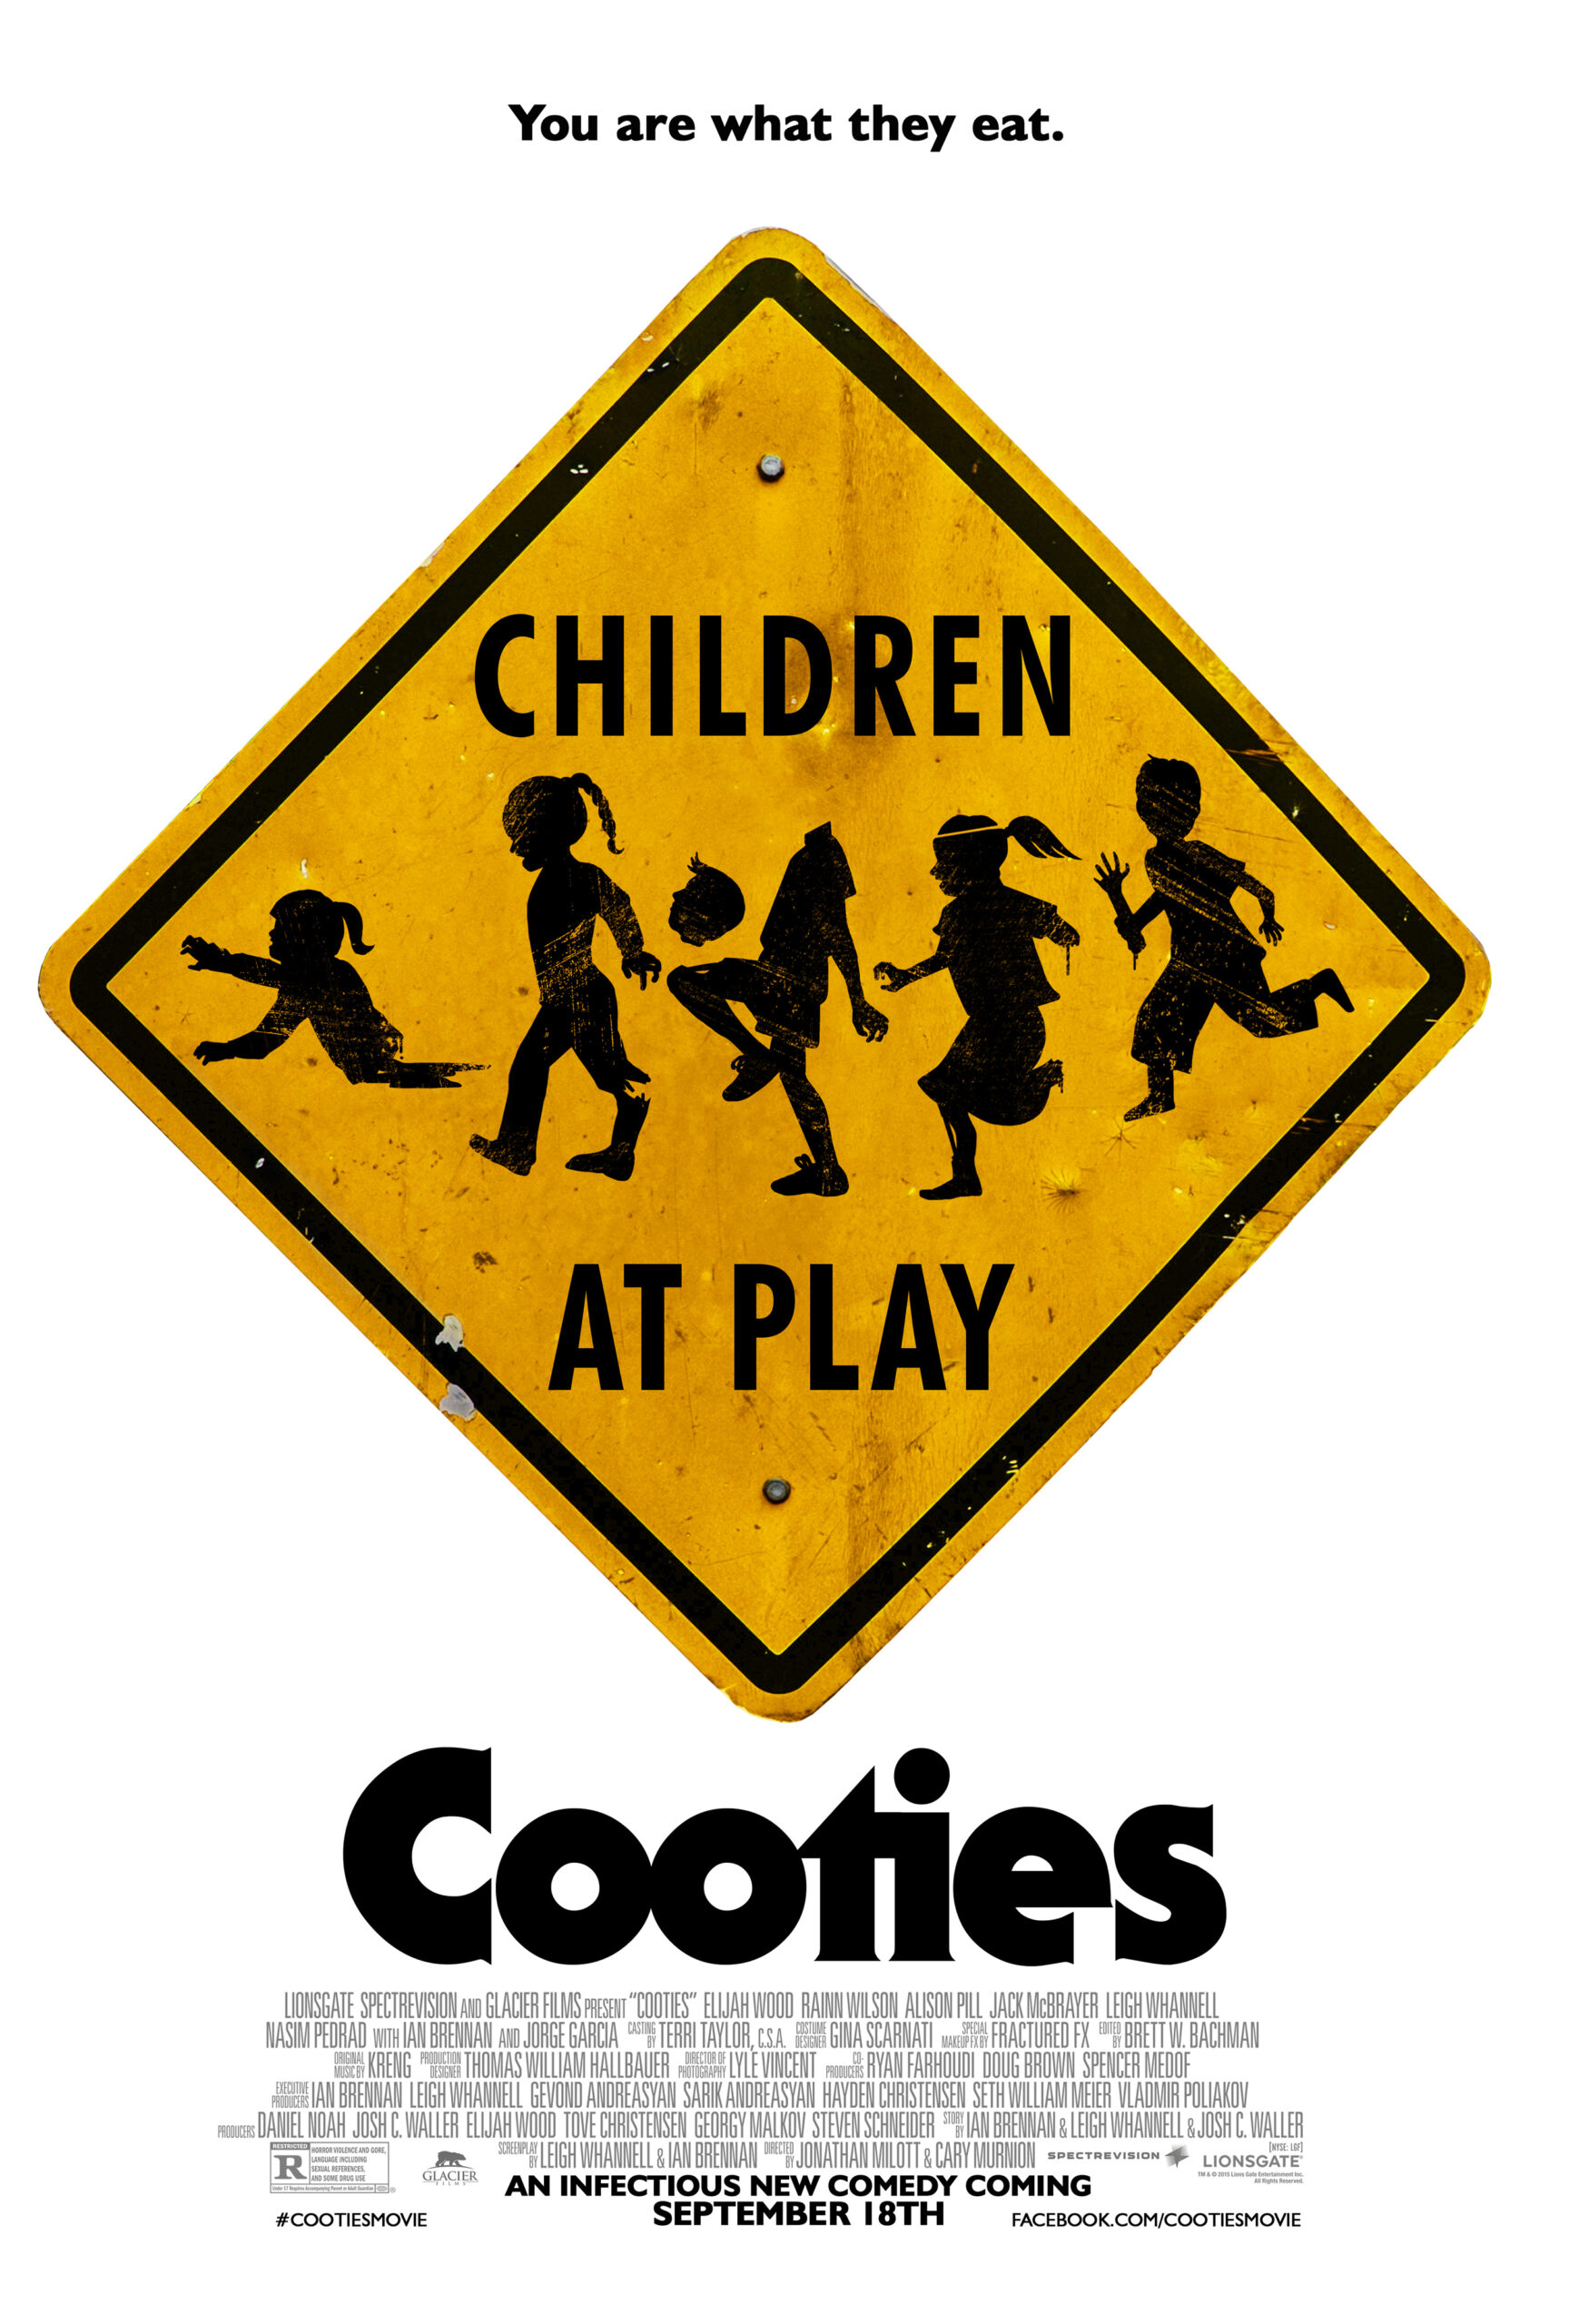 Get Infected With This New Poster From 'Cooties'